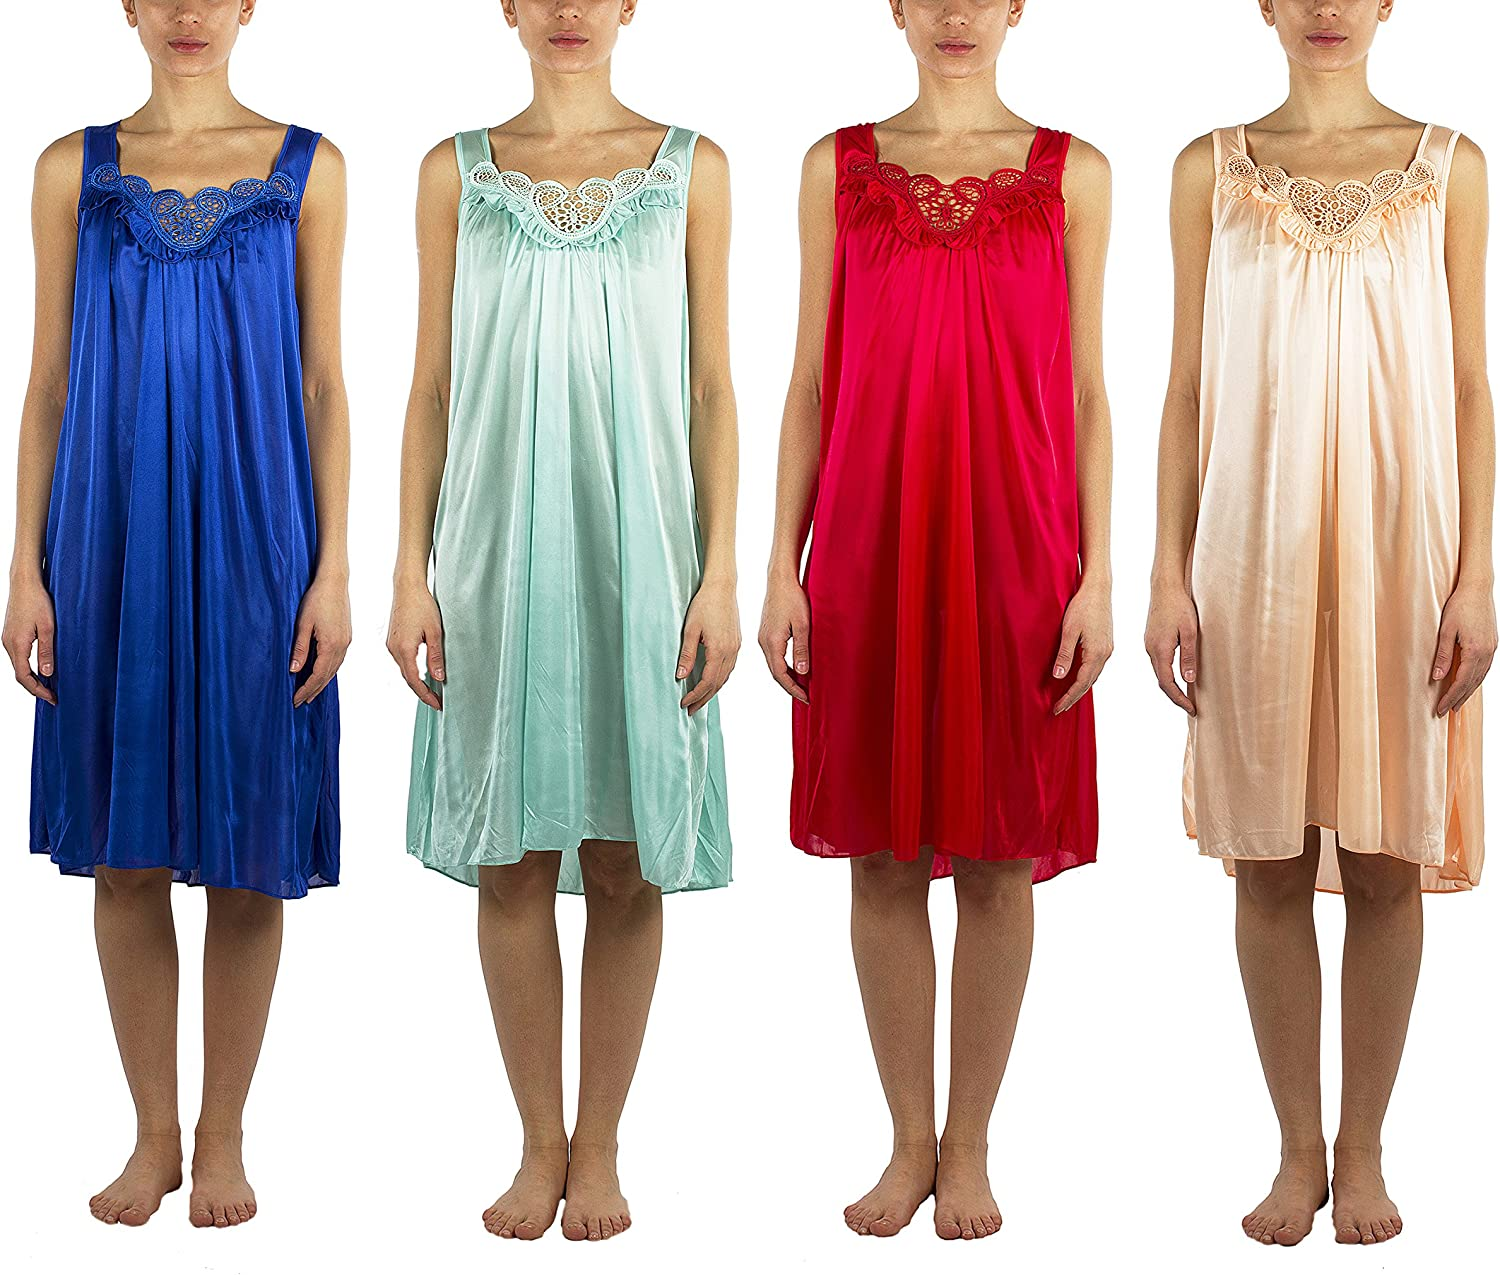 4 Pack of Silky Lace Accent San Antonio Mall Sheer Nightgowns to Dallas Mall 4X Avai Medium -